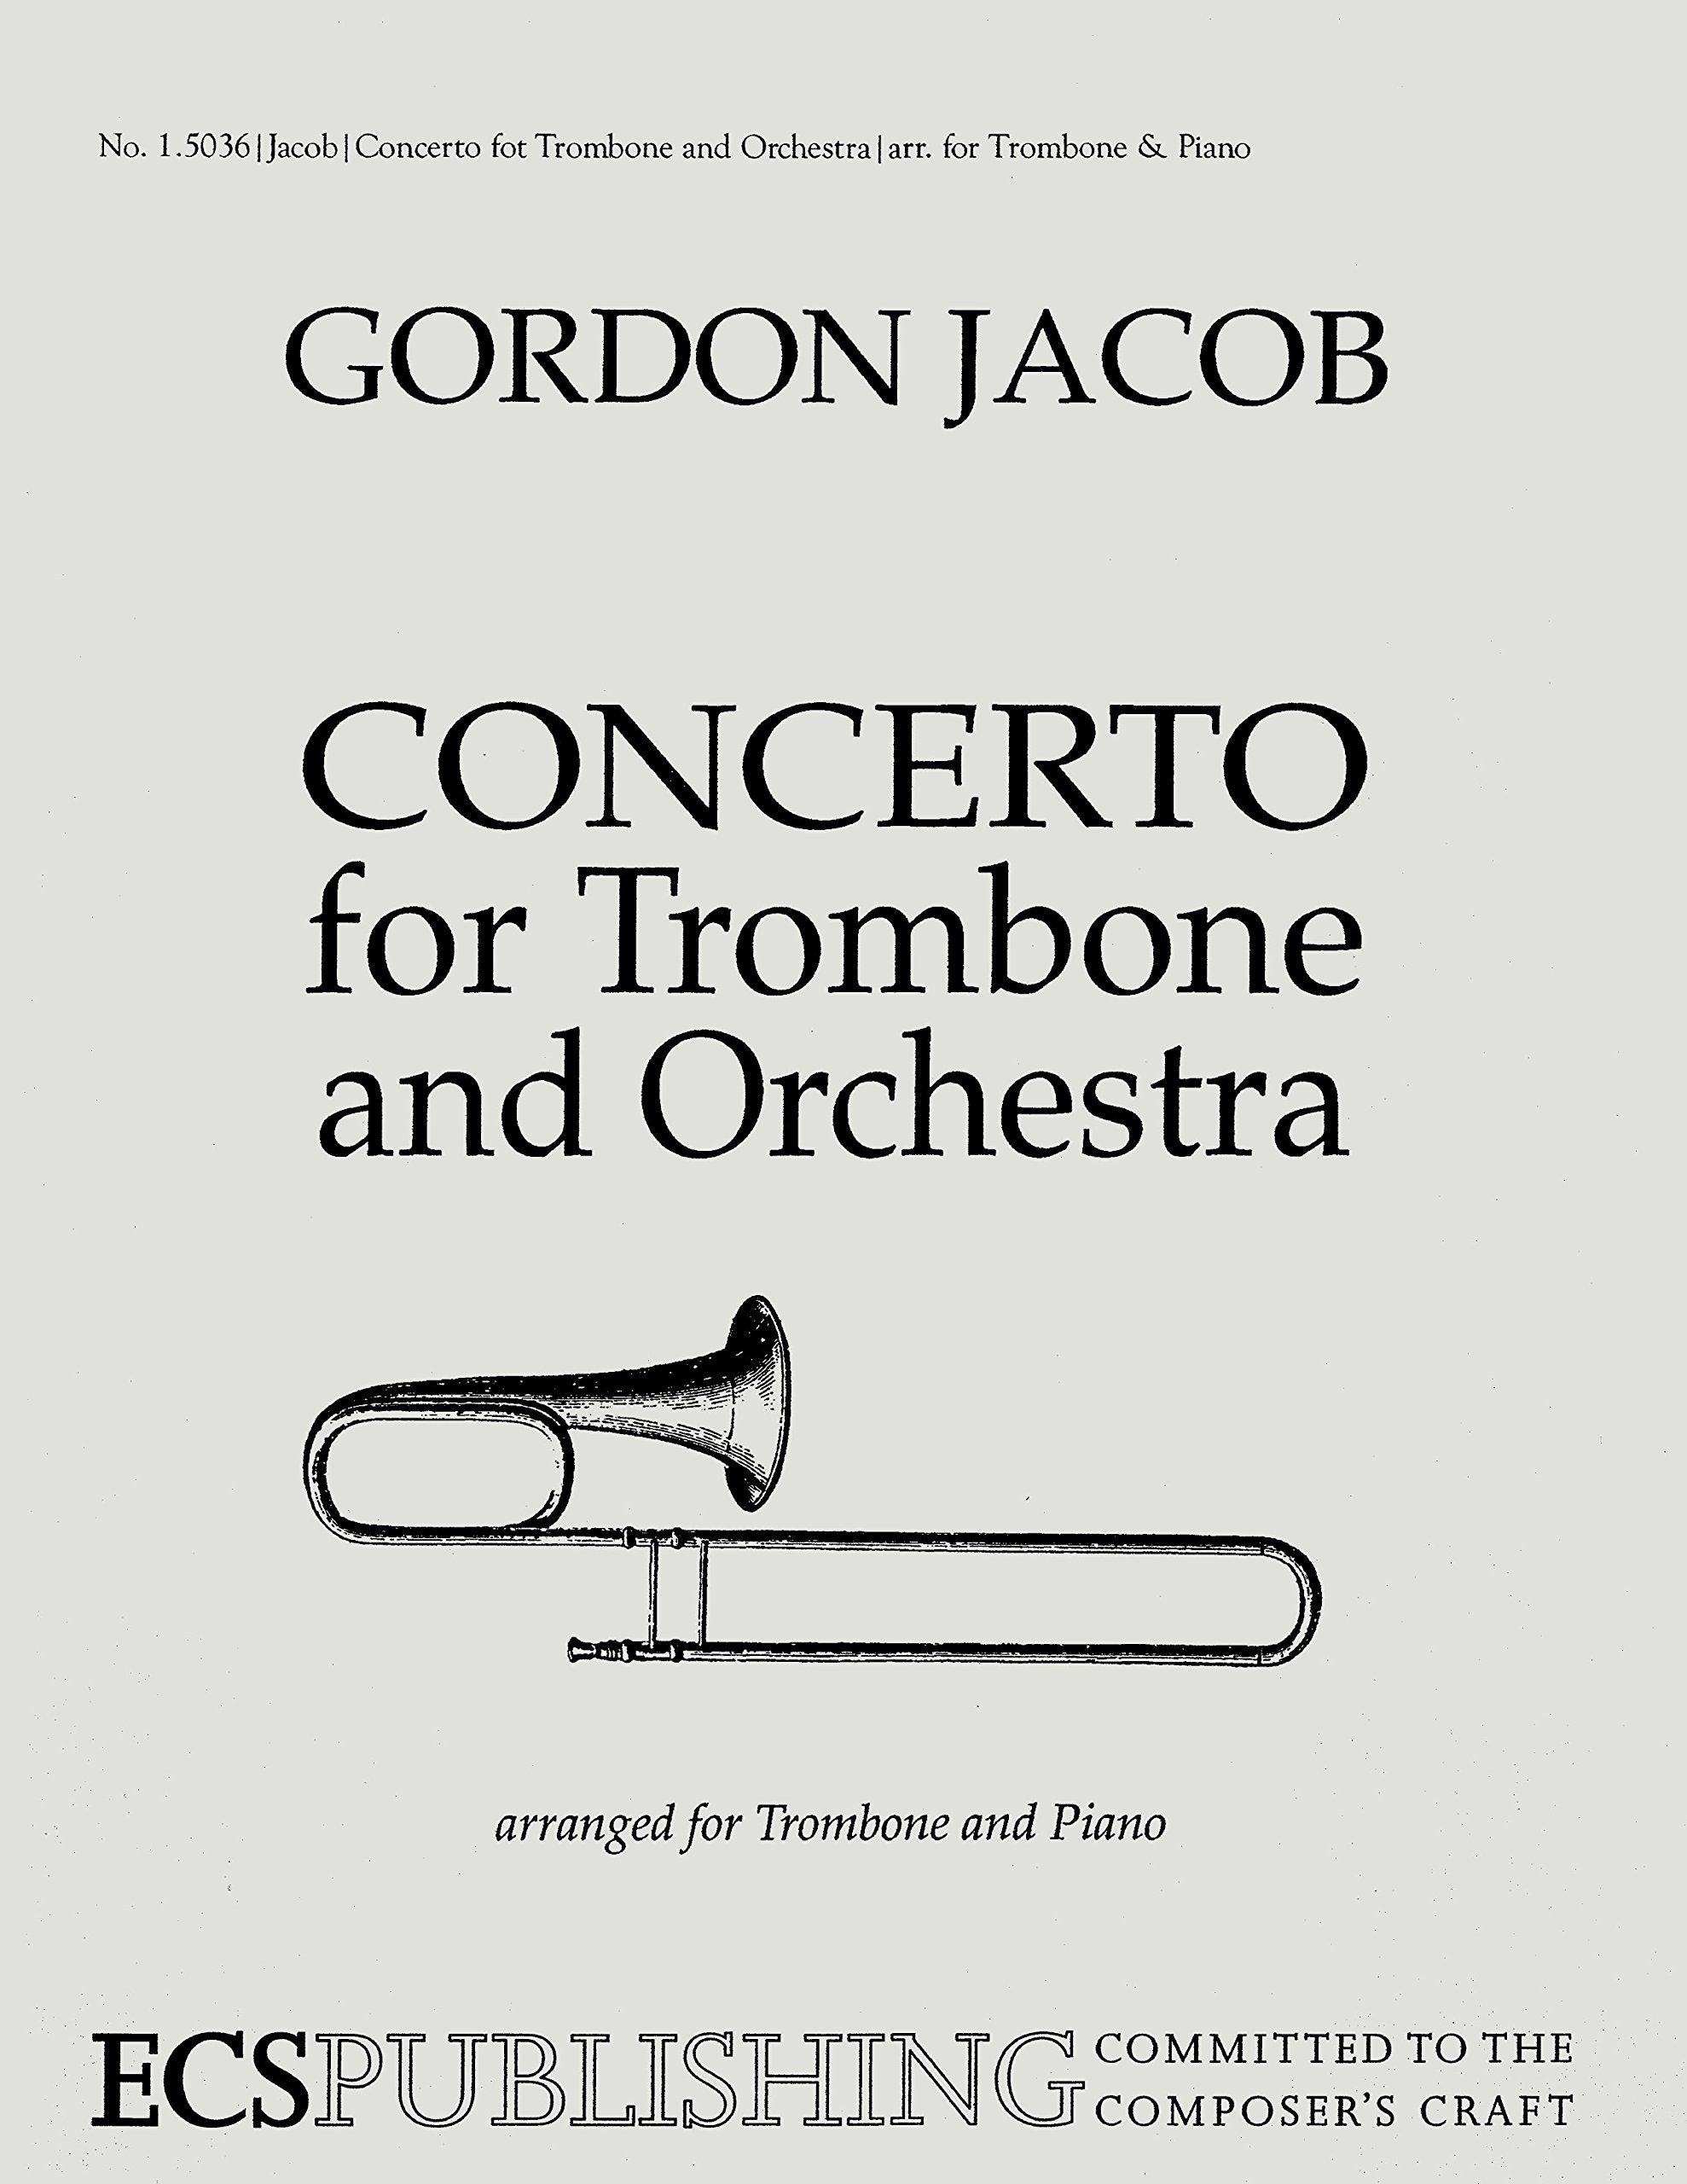 Concerto for Trombone and Orchestra: Arranged for Trombone and Piano